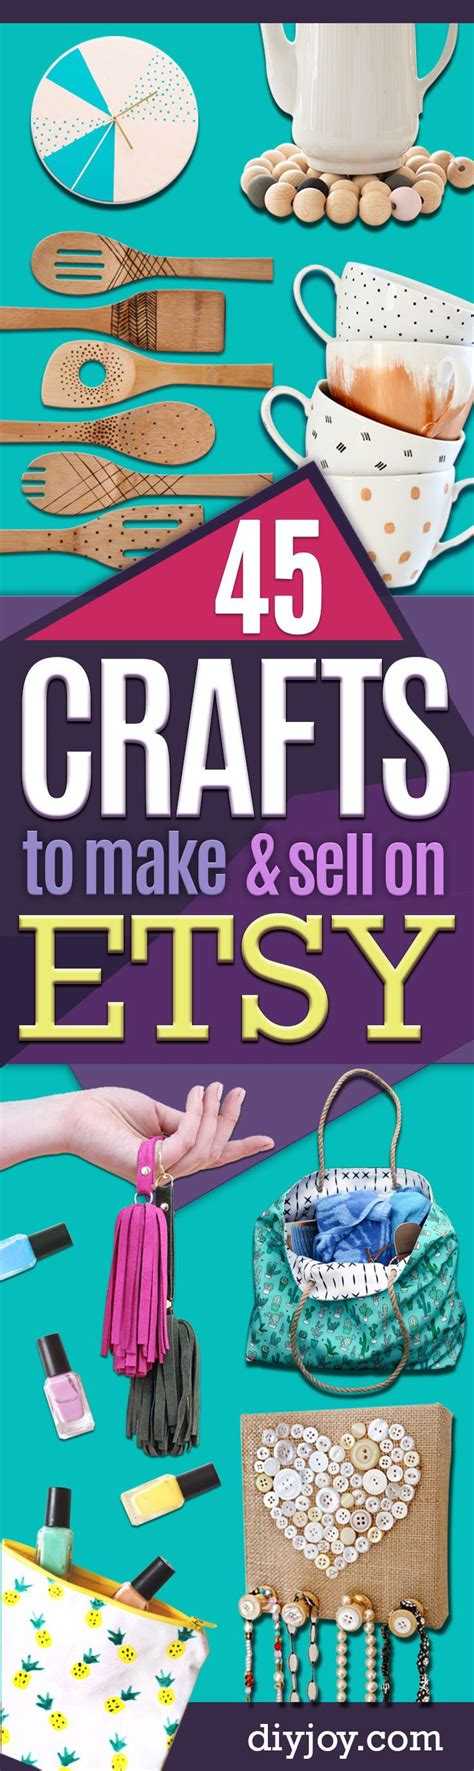 crafts to make money from income from home kit review 25 best ideas about money crafts on